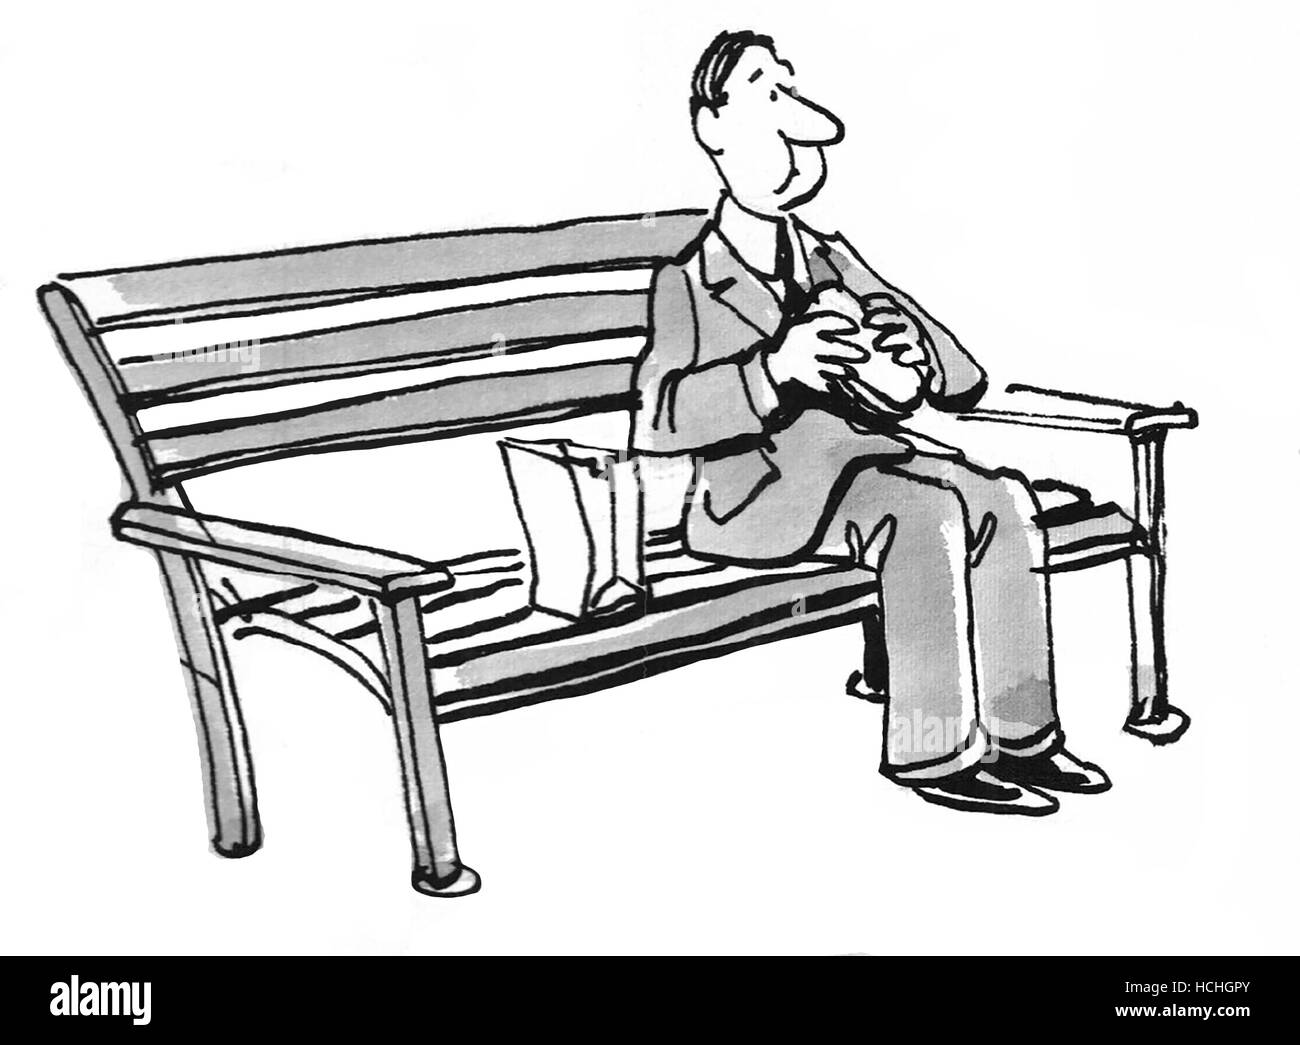 Terrific Black And White Illustration Of Man Eating A Sandwich While Machost Co Dining Chair Design Ideas Machostcouk